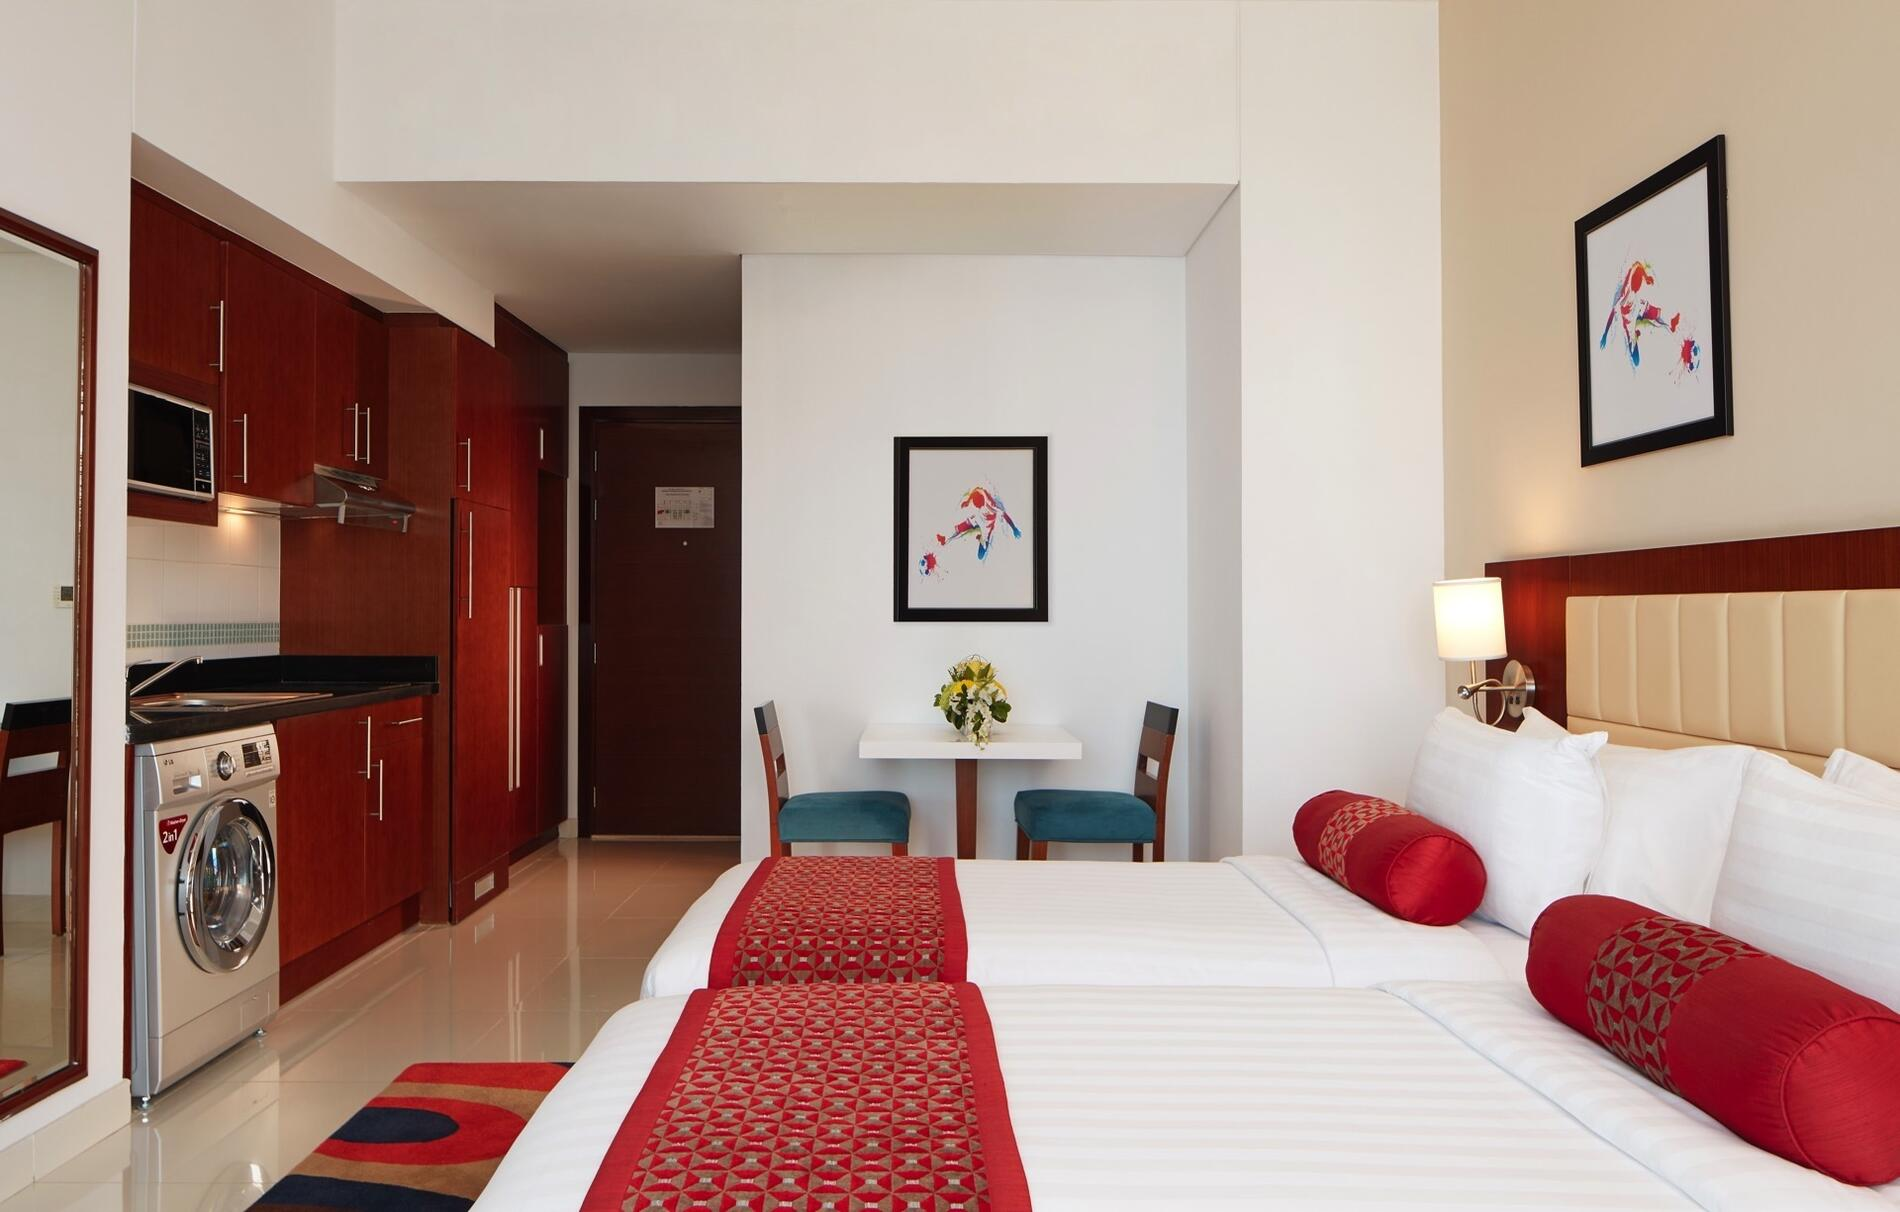 Deluxe Studio at Treppan Hotel and Suites